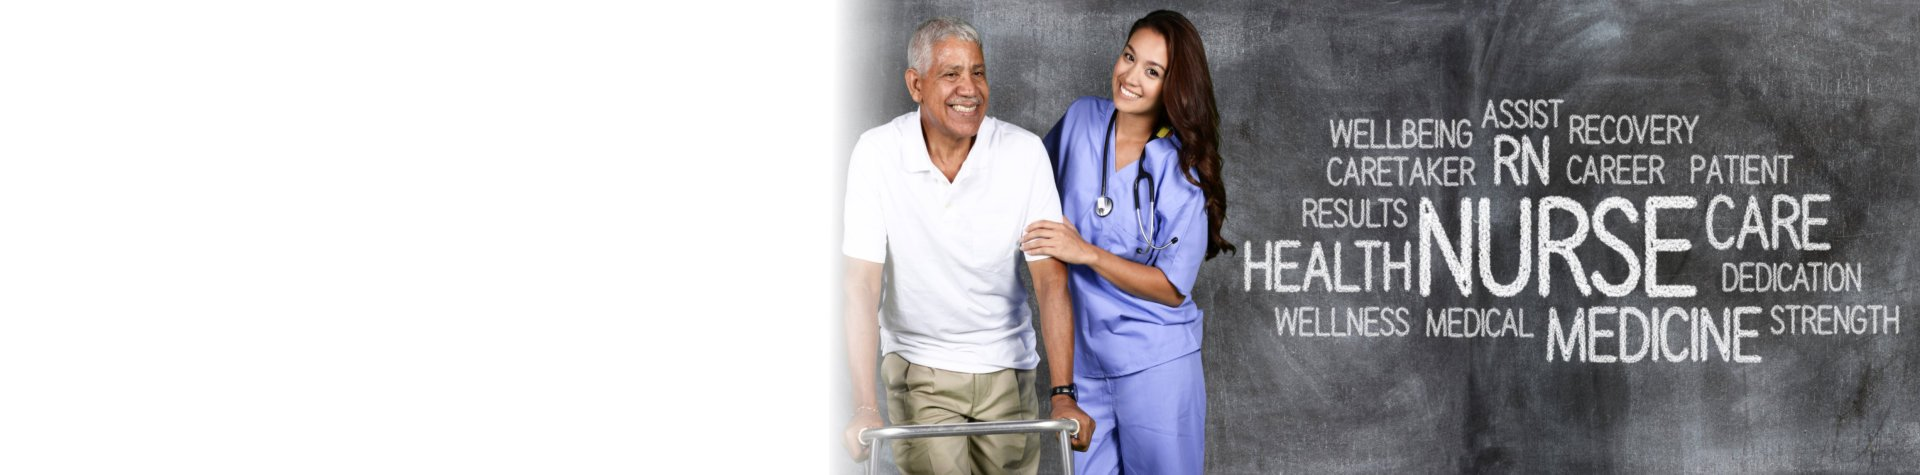 elderly man and caregiver smiling